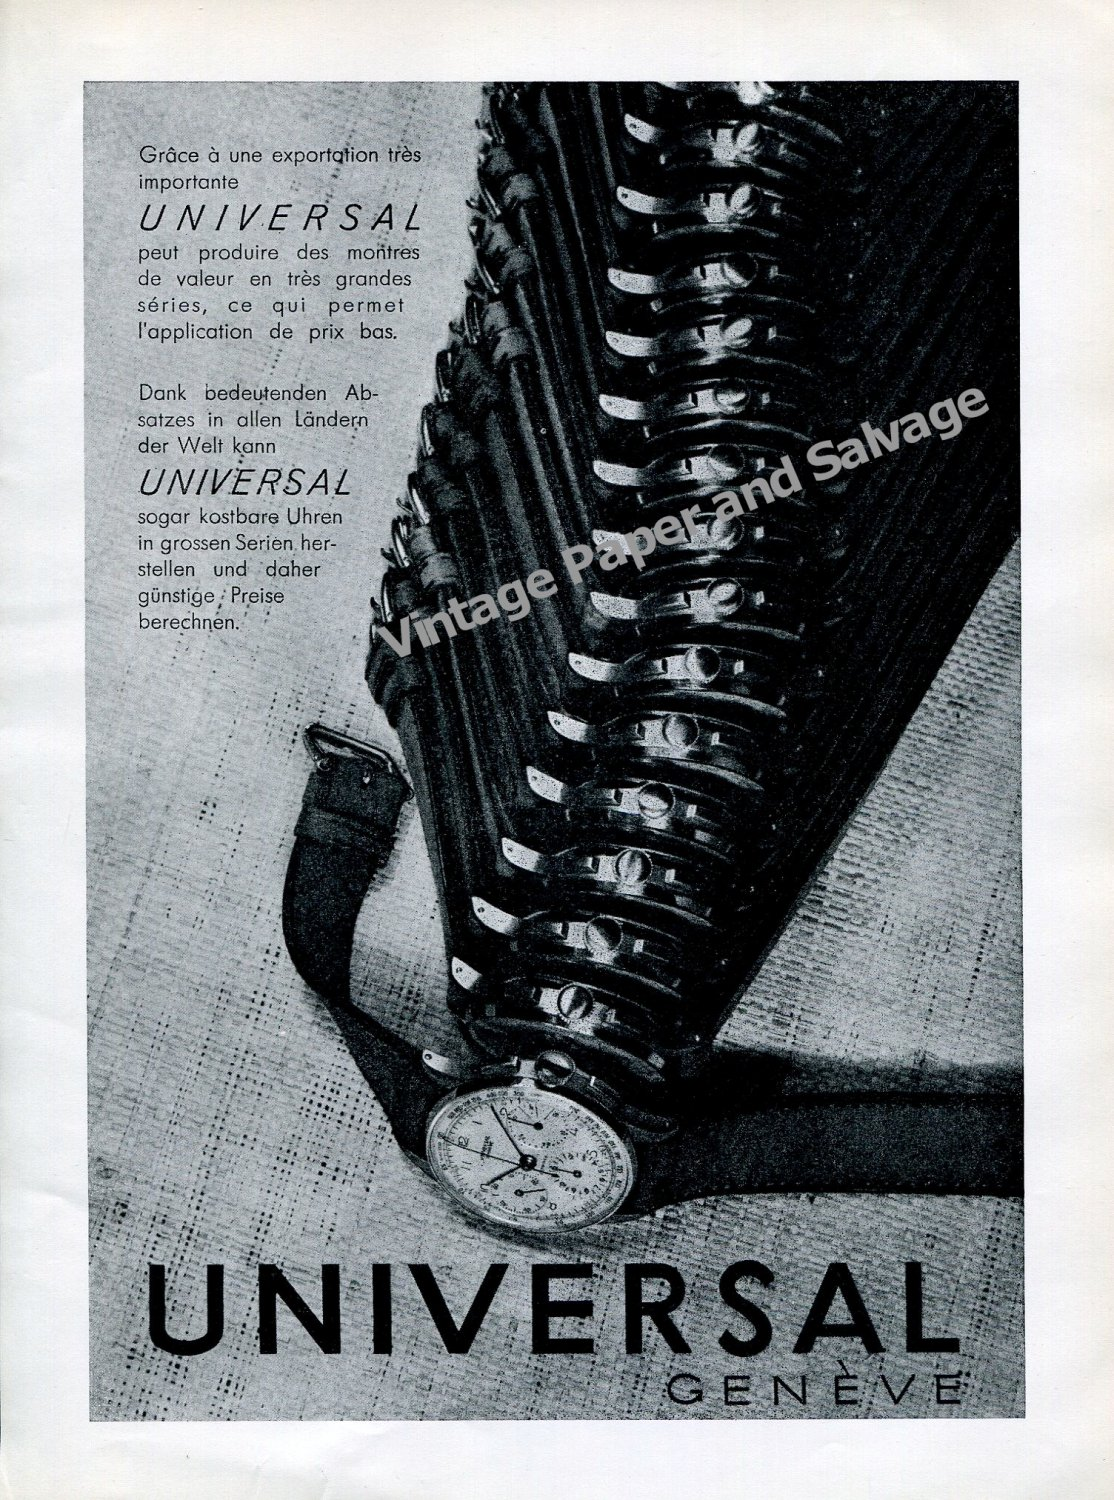 Vintage 1942 Universal Geneve Watch Company Switzerland 1940s Swiss Ad Advert Suisse